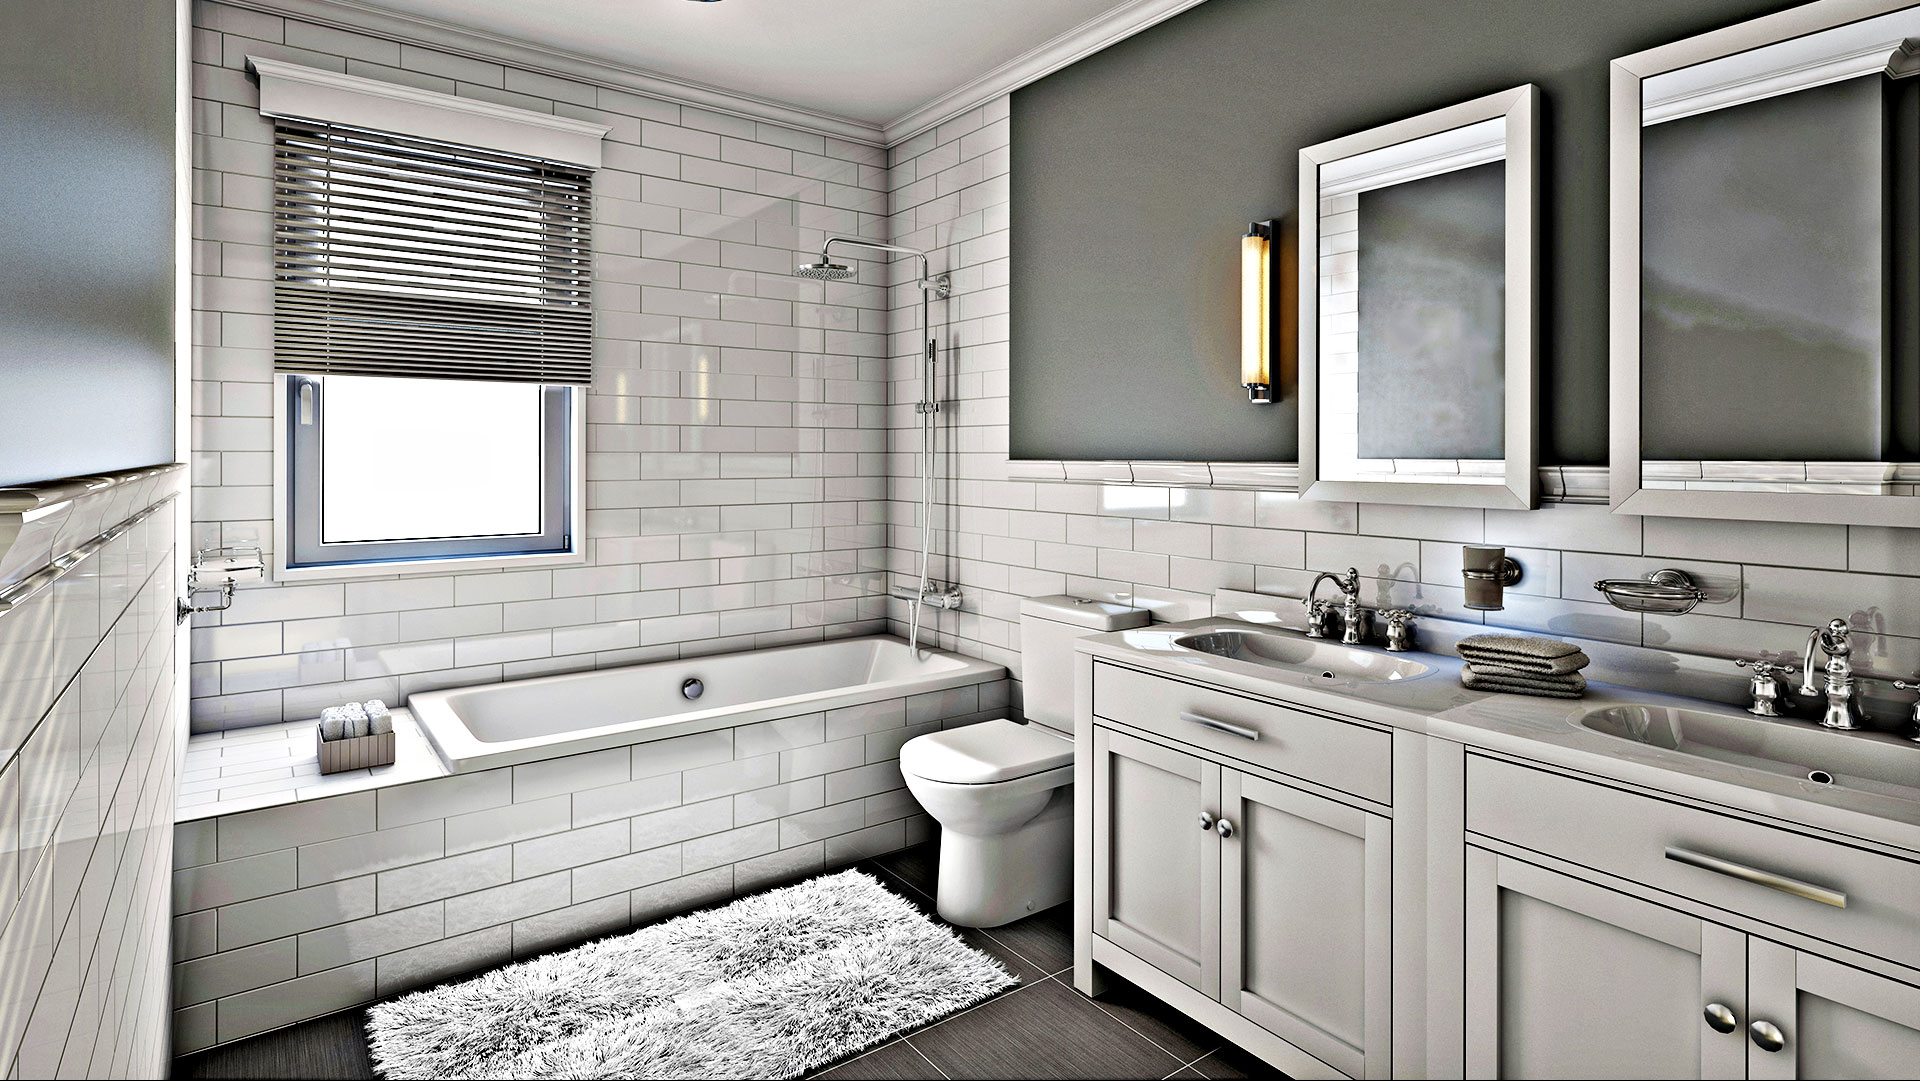 Omni Remodeling Co. LLC Remodeled Bathroom